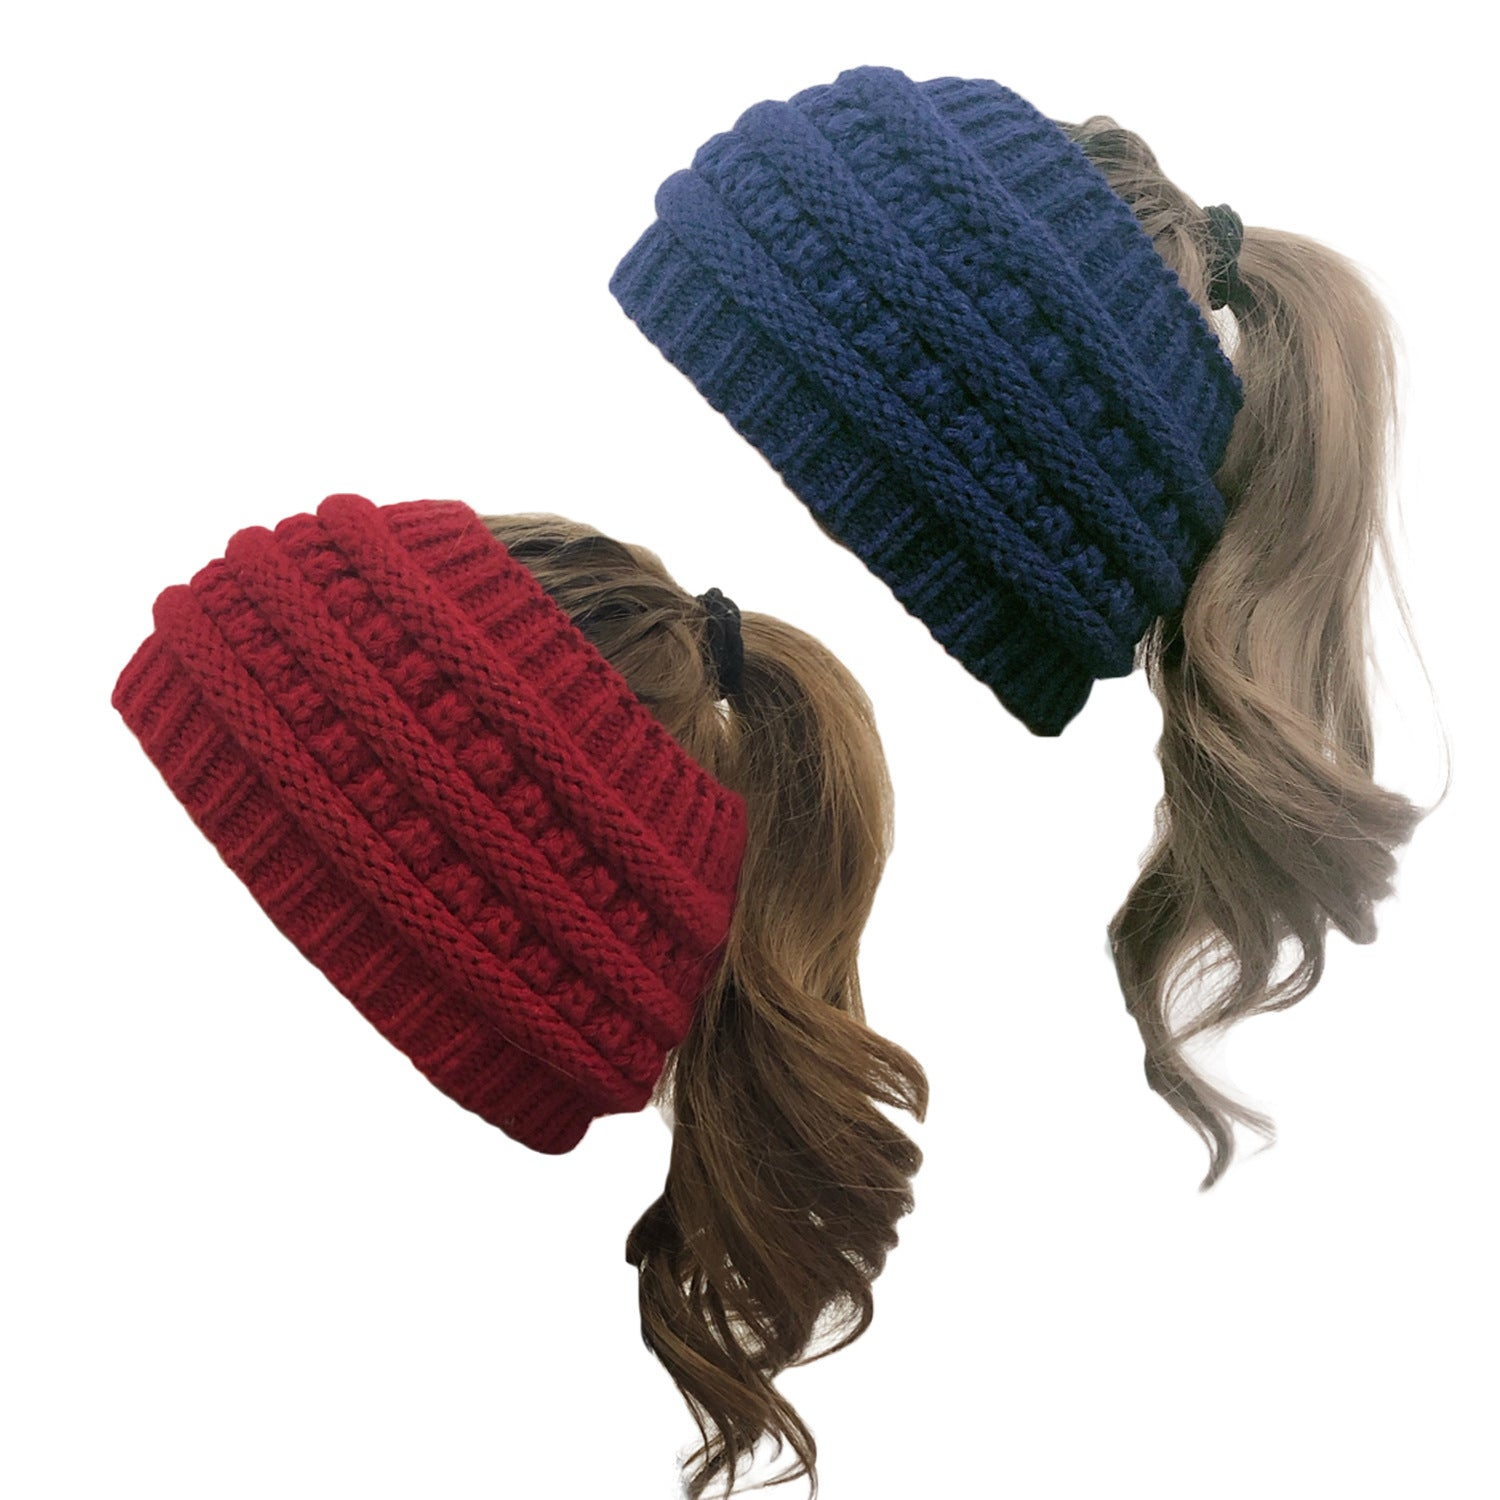 New knitted ponytail hat